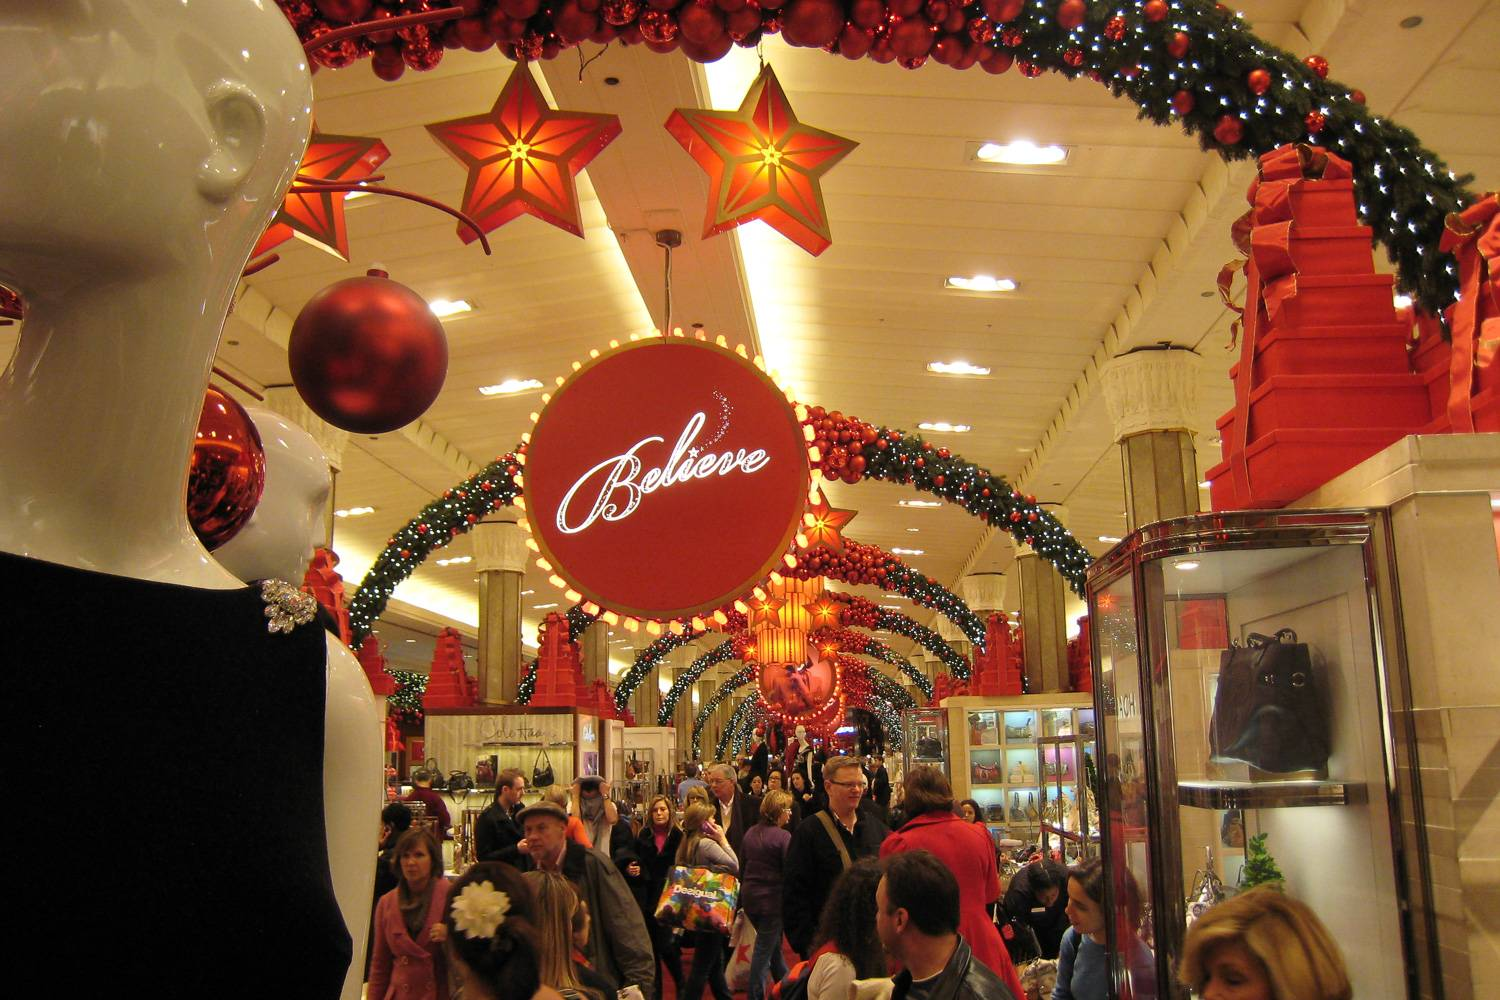 Image of the interior of New York's Macy's department store decorated for the Christmas season.